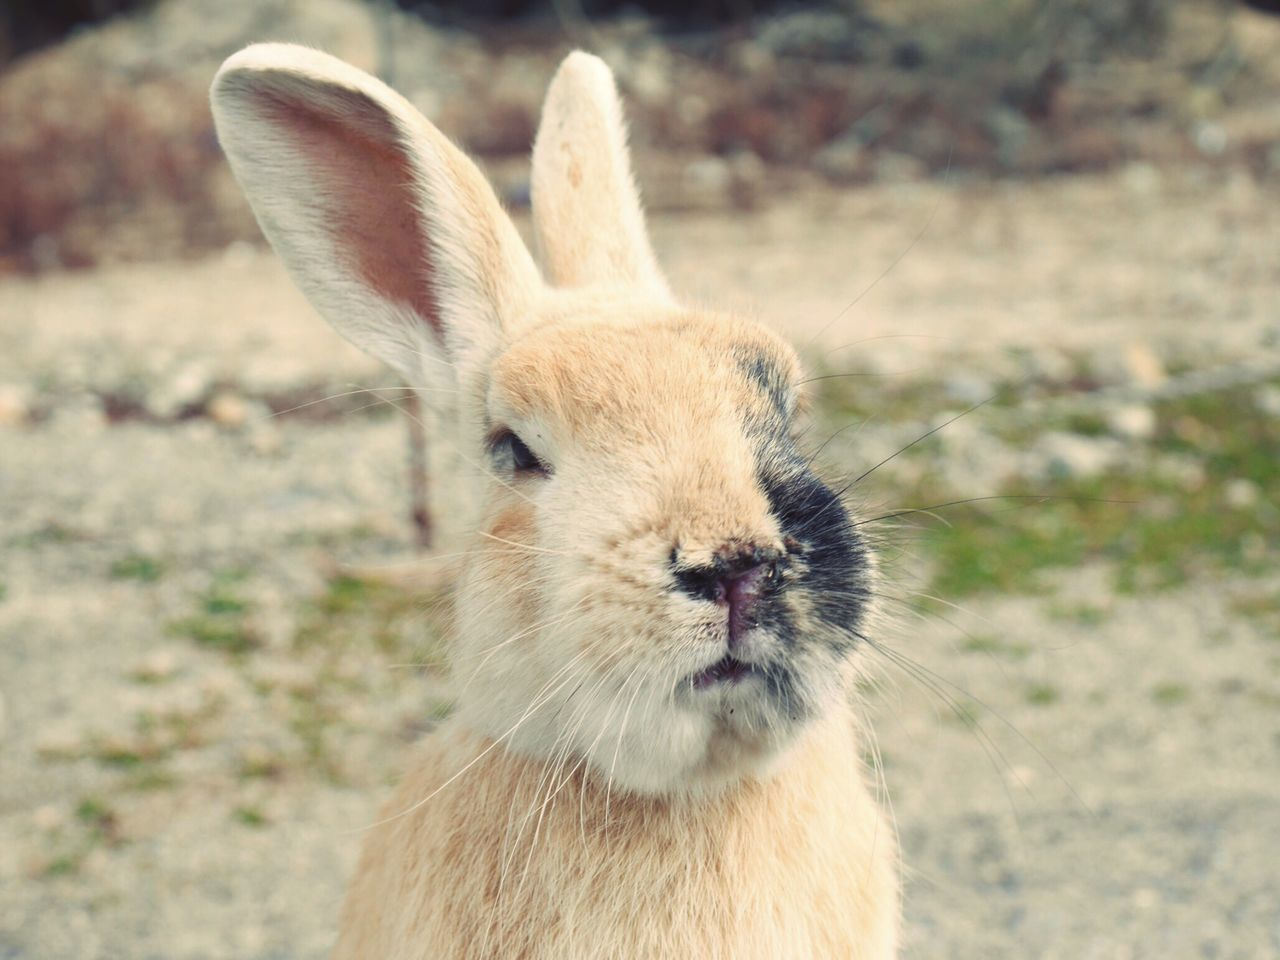 Beautiful Nature Nature_collection Nature Photography Nature Animal Themes Animals In The Wild Animals Animal Animal Wildlife Animal Head  Animal Photography Rabbit ❤️ Rabbit Rabbits Island Outdoors